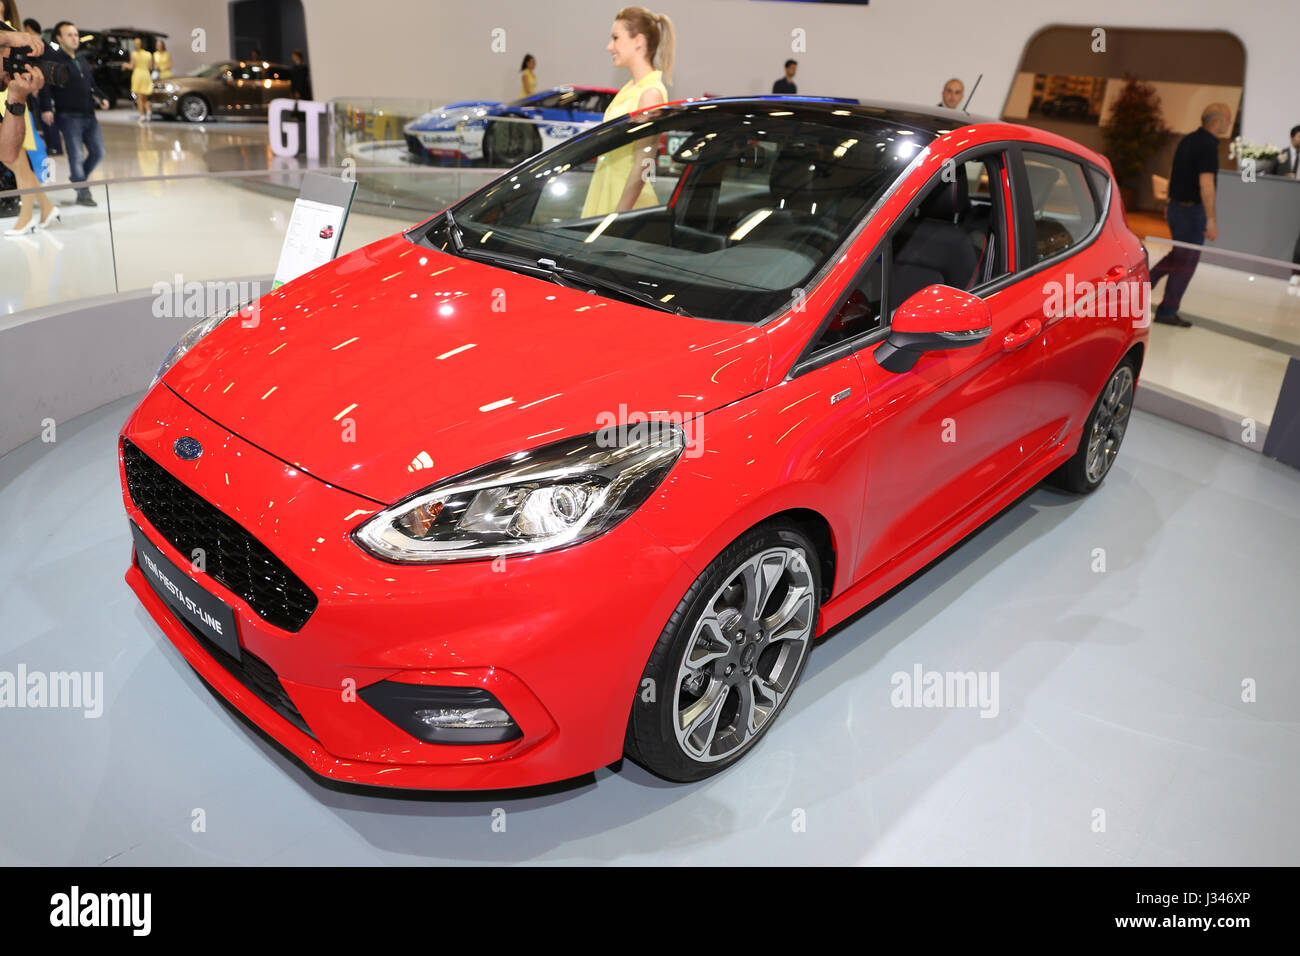 istanbul turkey april 22 2017 ford fiesta st line on display at stock photo 139620174 alamy. Black Bedroom Furniture Sets. Home Design Ideas